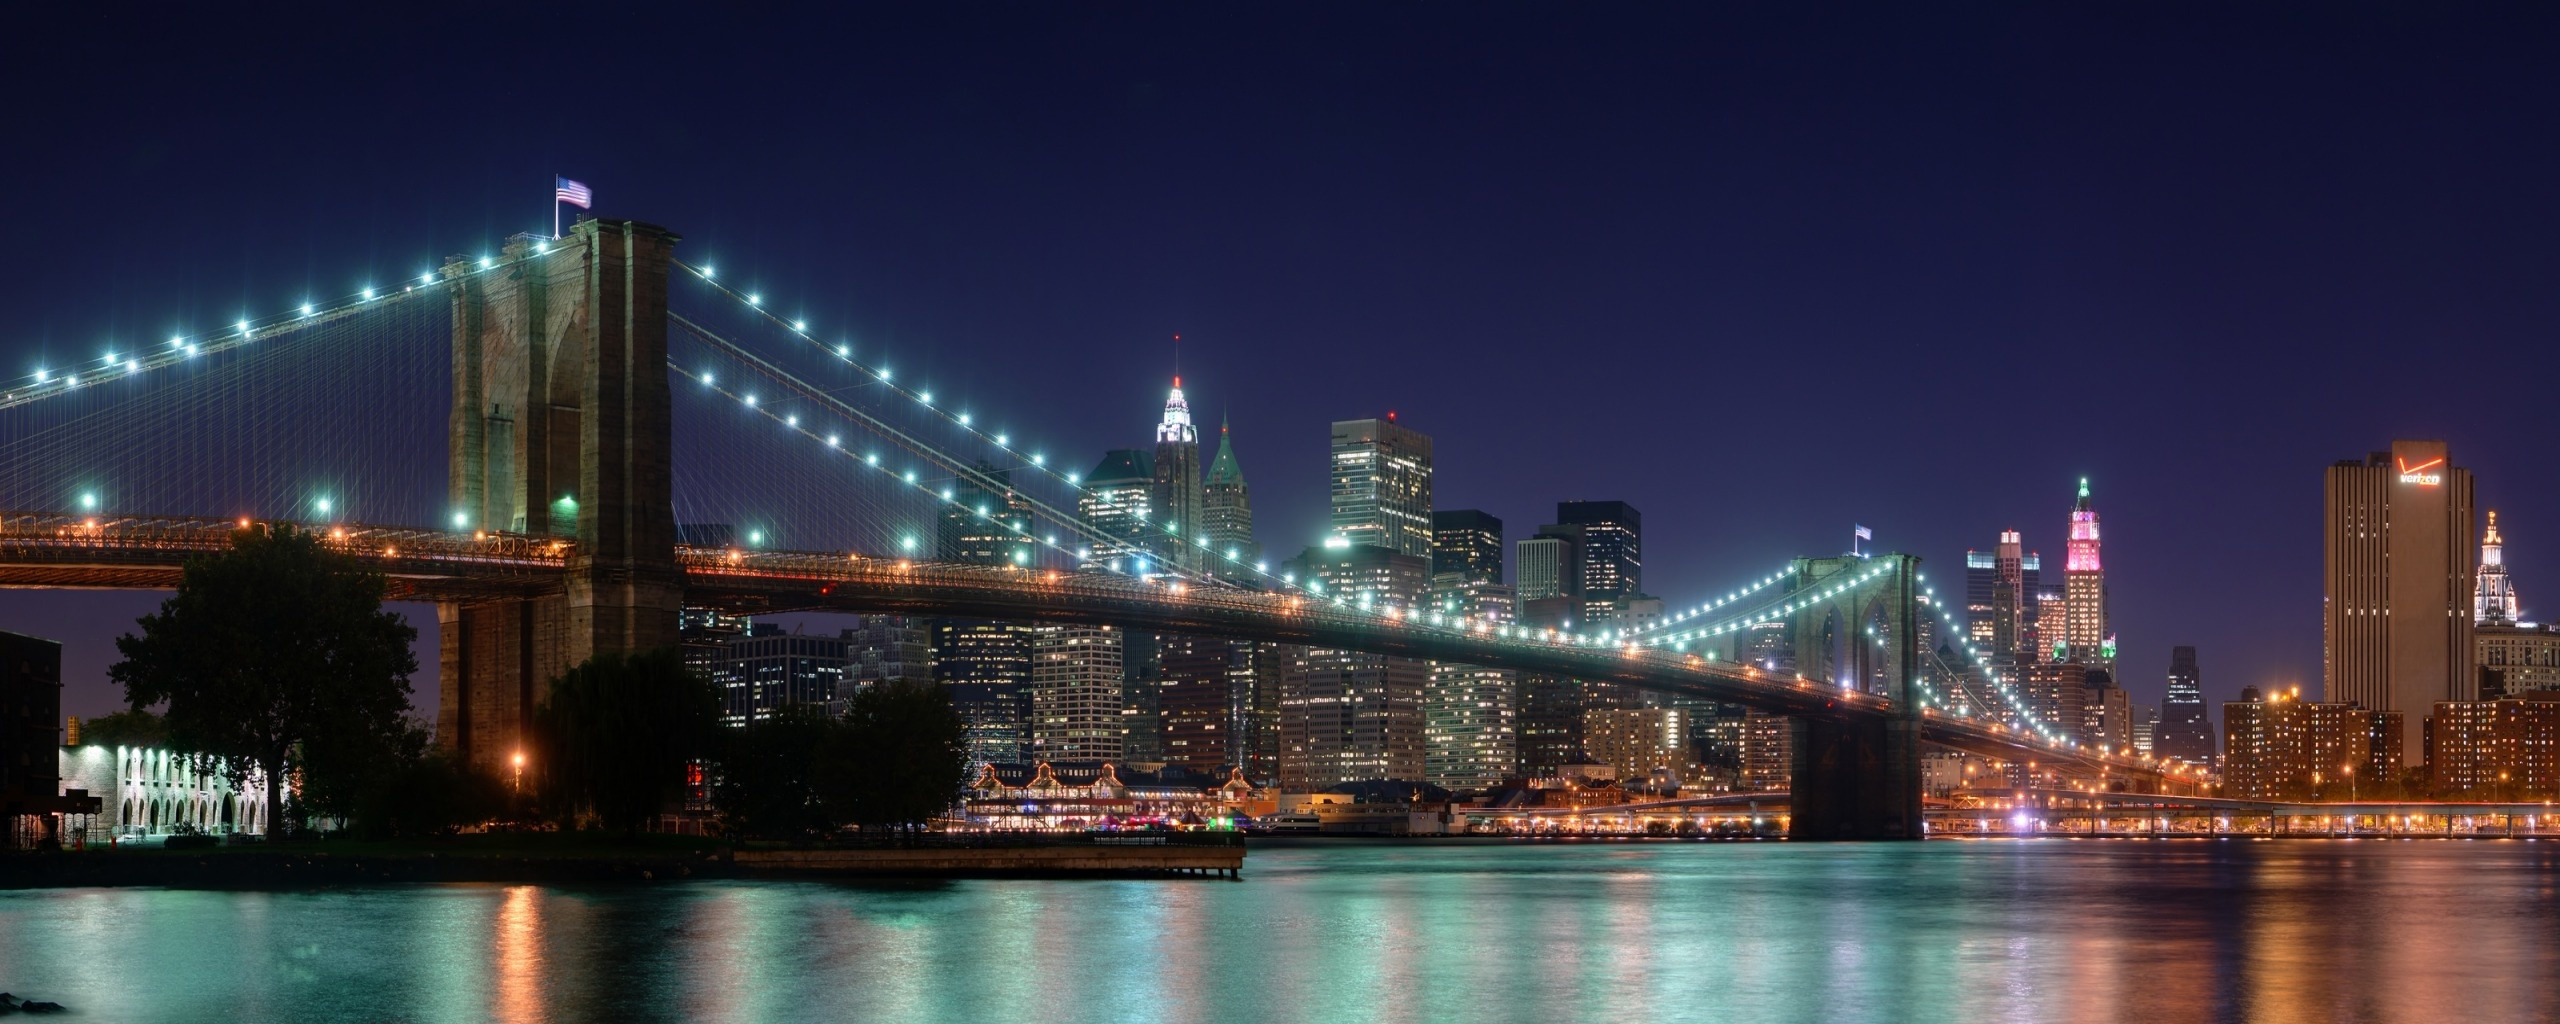 Popular Wallpaper Night Dual Monitor - brooklyn_bridge_panorama_dual_monitor_7699  Best Photo Reference.jpg